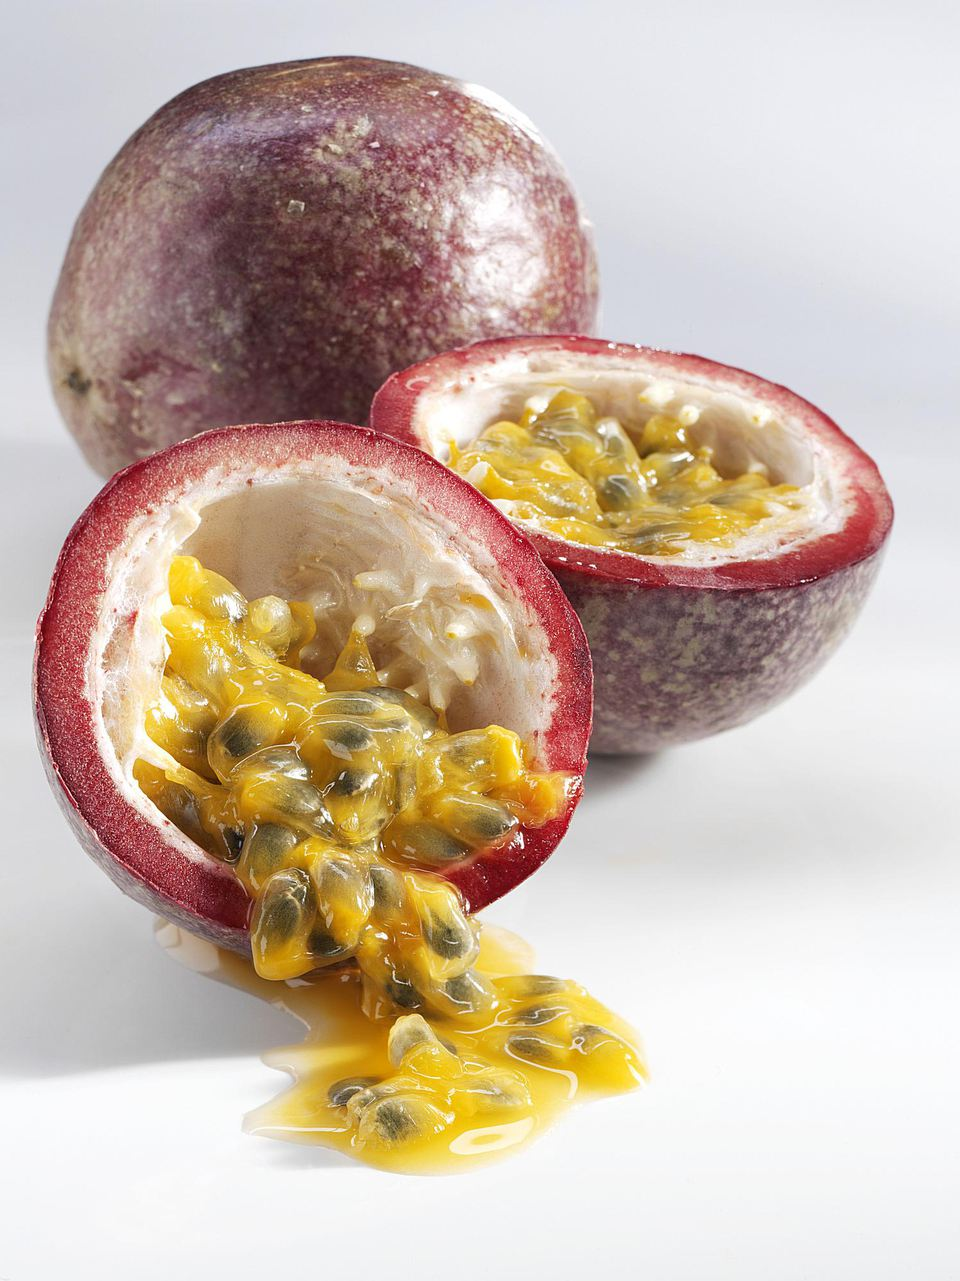 Passion fruit makes delicious truffles